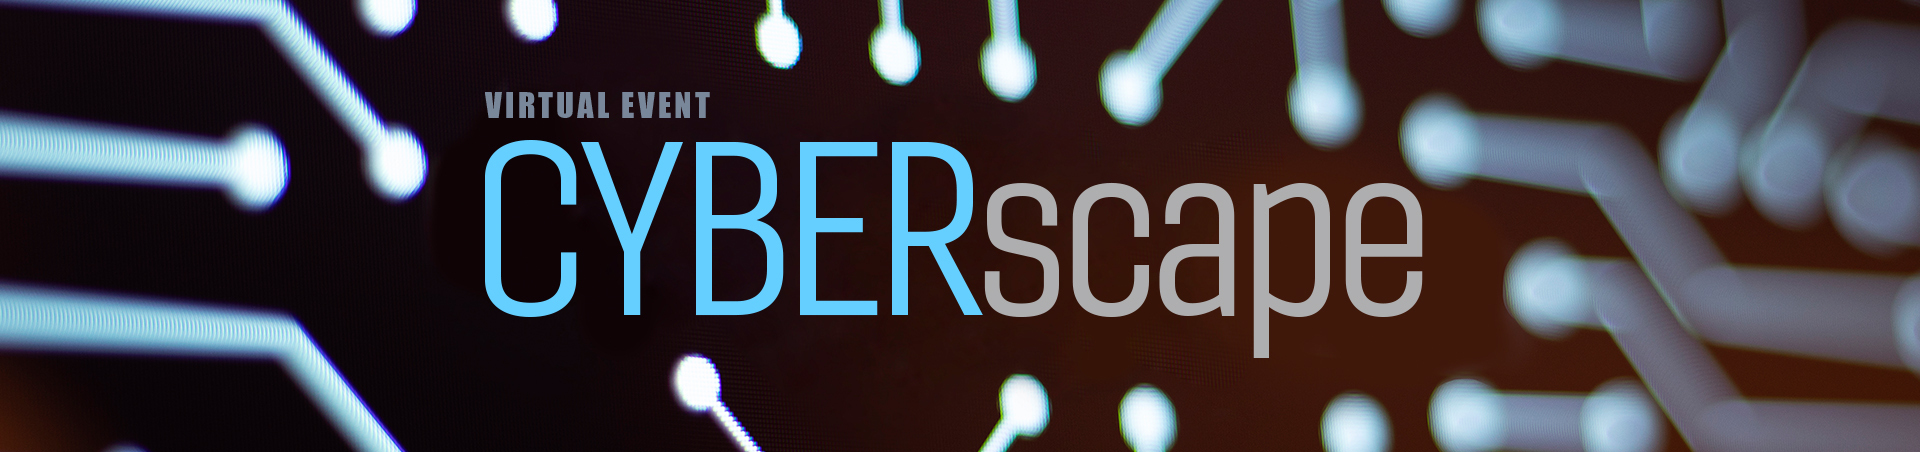 Cyberscape